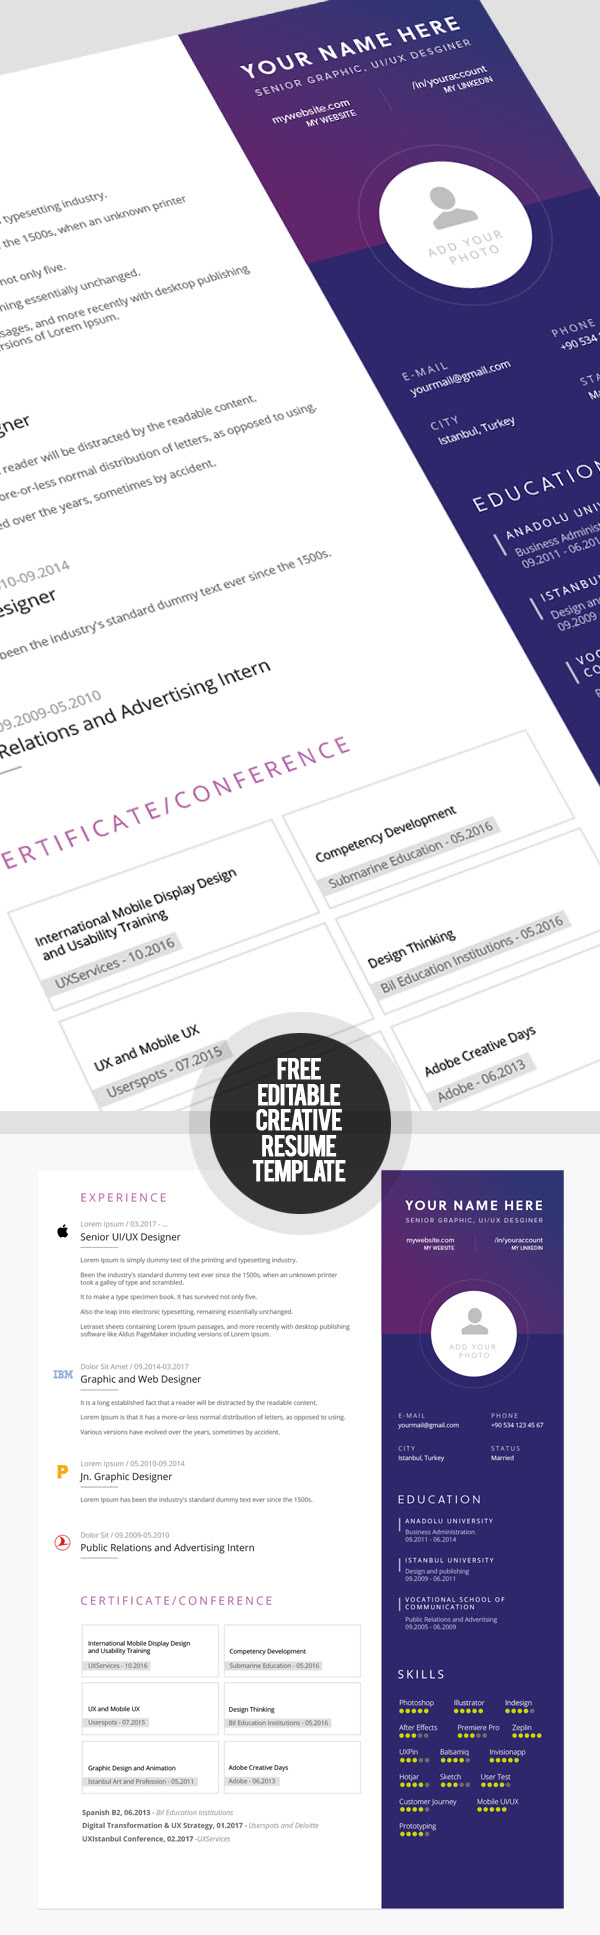 23 Free Creative Resume Templates with Cover Letter | Freebies | Graphic Design Junction